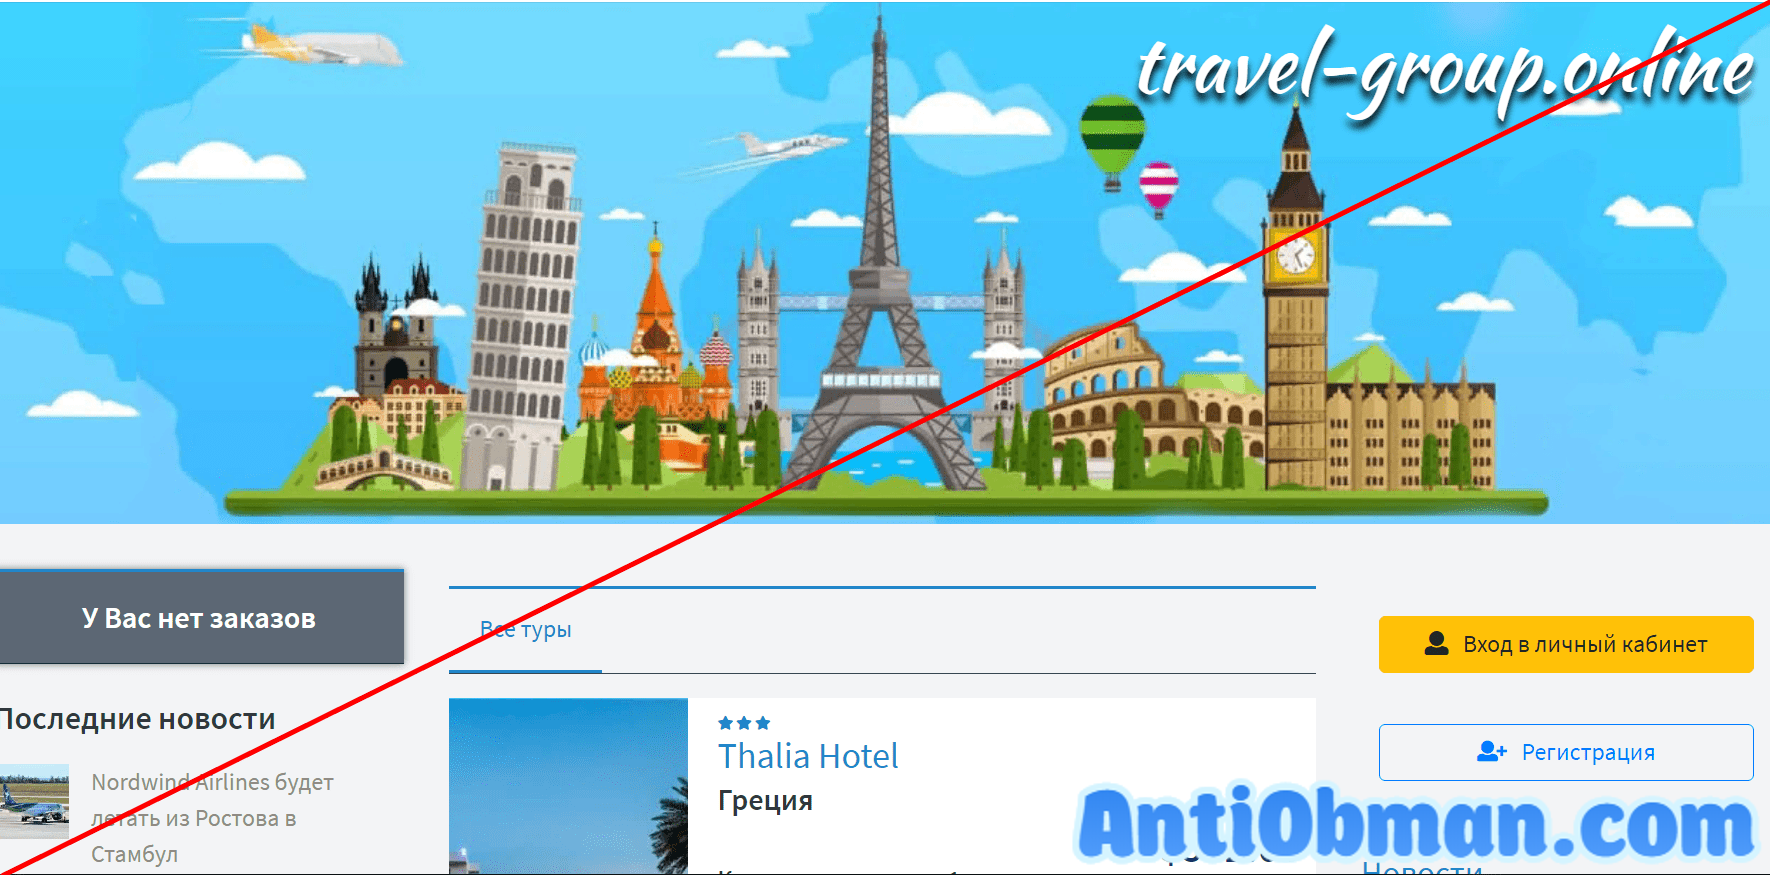 Лохотрон travel-group.online - отзывы